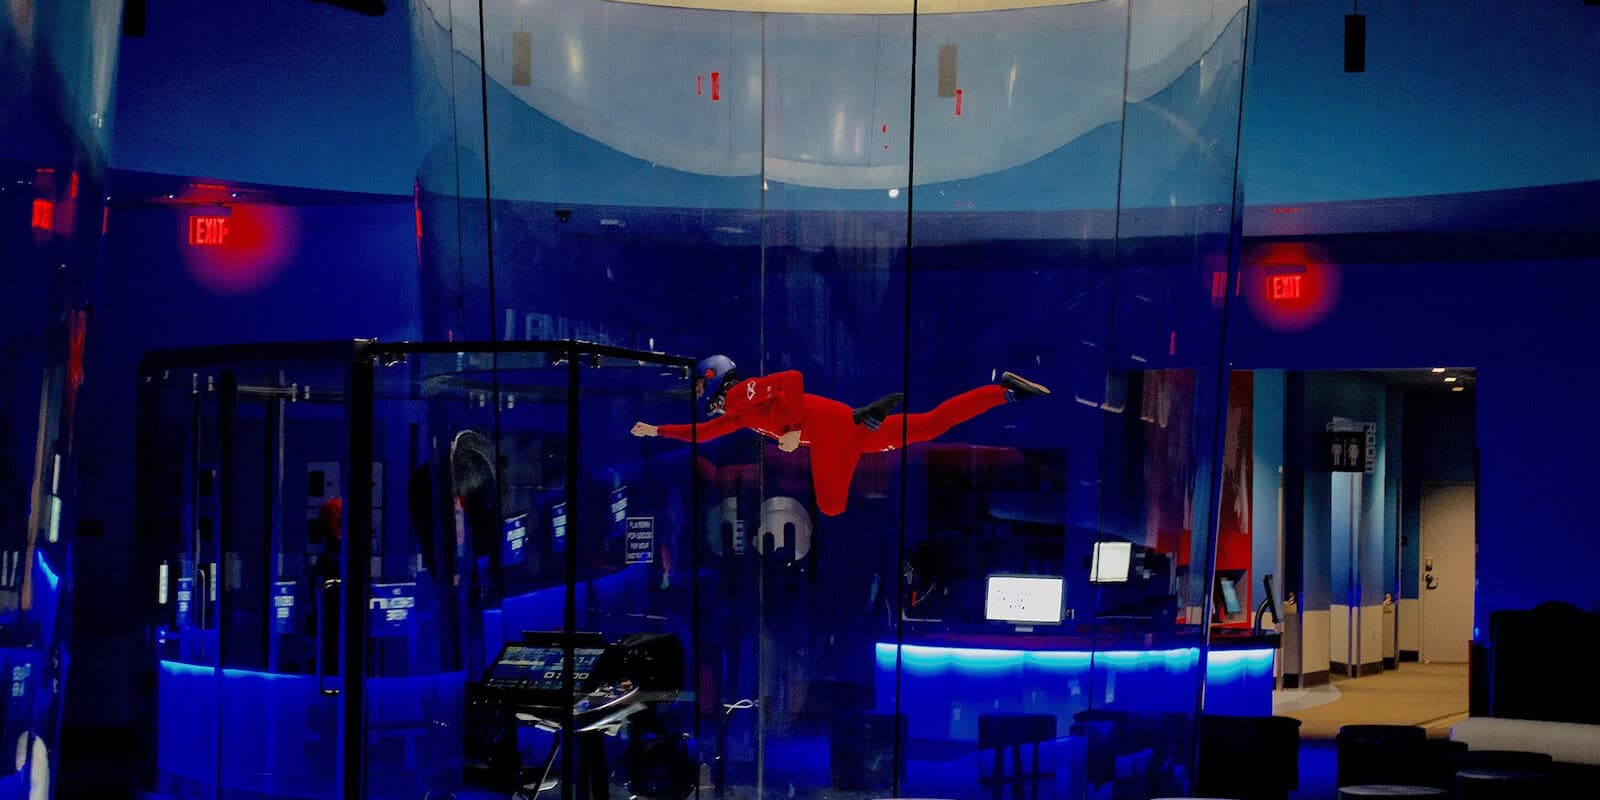 Image of a person flying at iFly, an indoor skydiving facility in Lone Tree, Colorado